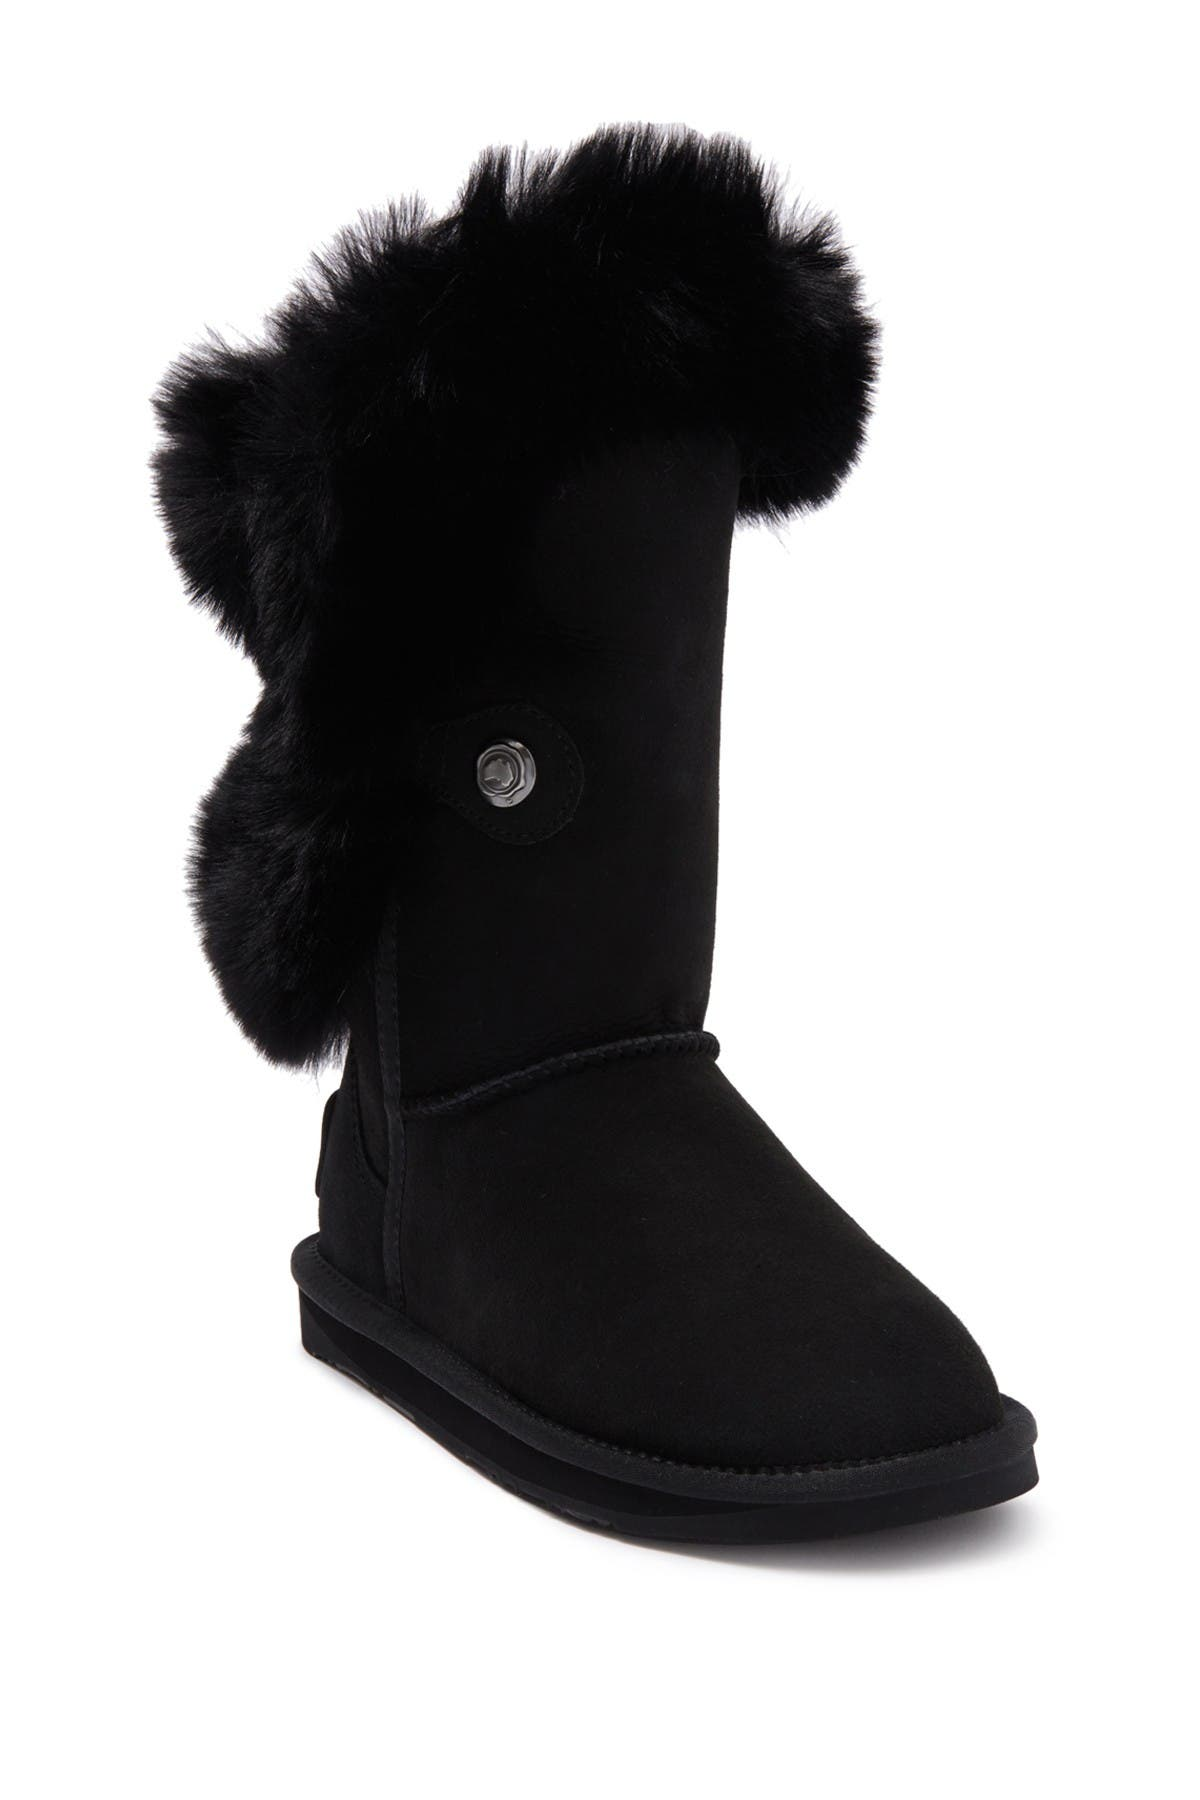 Image of Australia Luxe Collective Nordic Short Luxe Faux Fur Boot